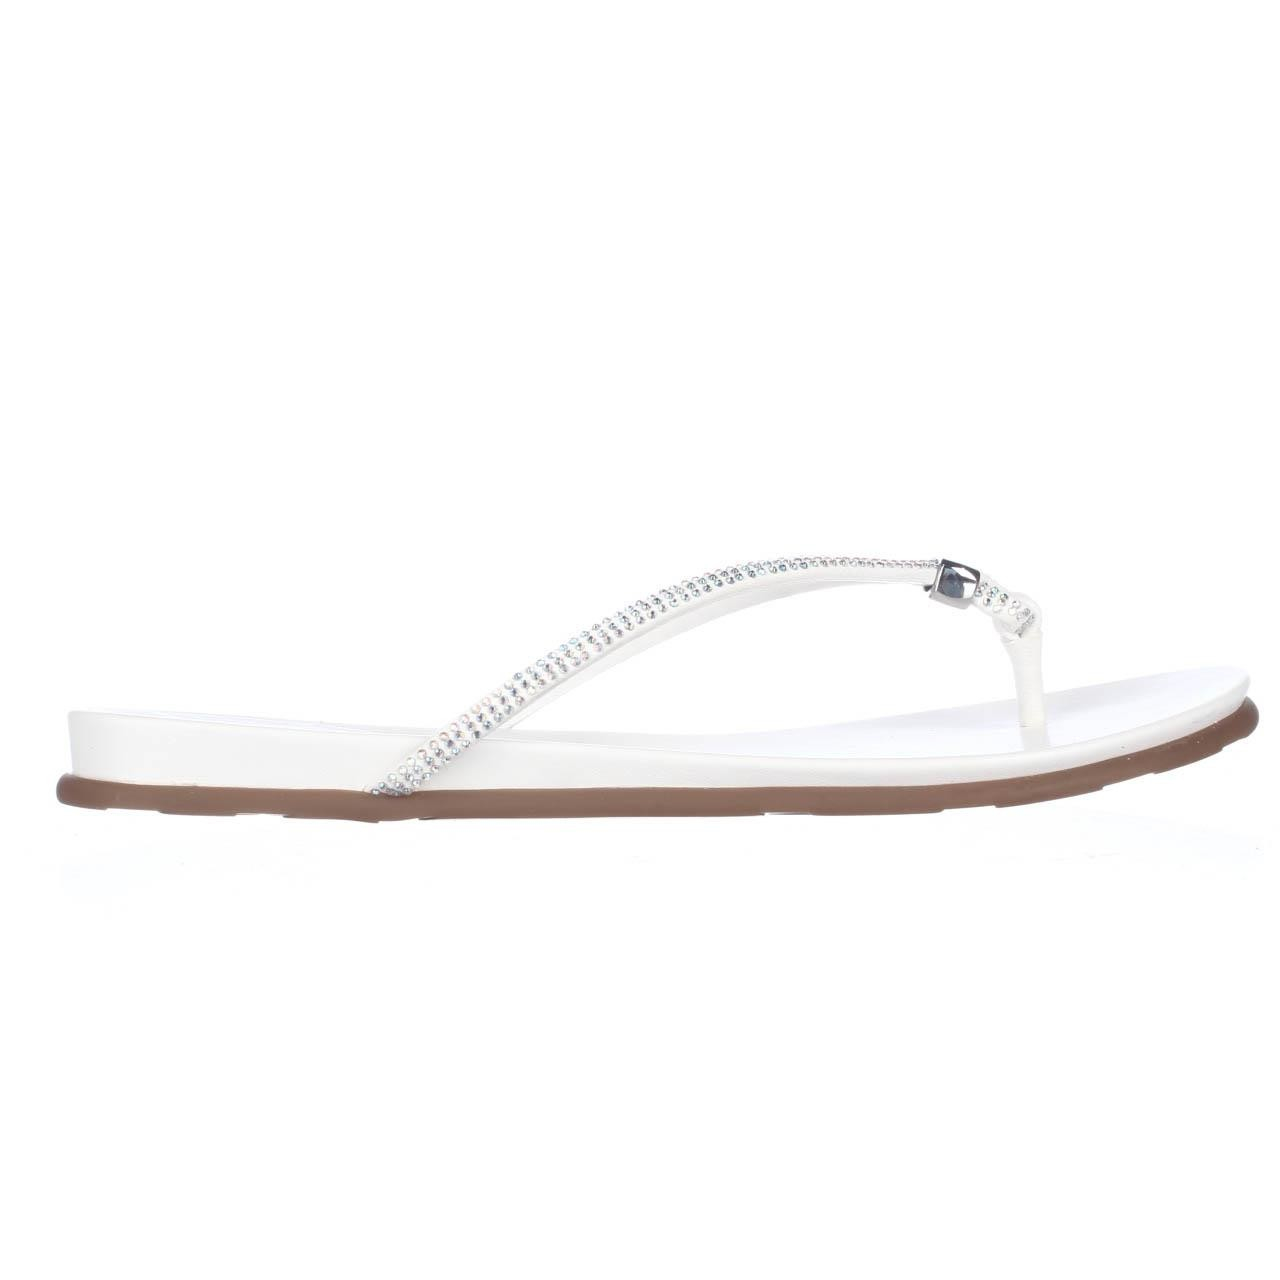 Vince Camuto Elliot Thong Flip Flop Sandals in White